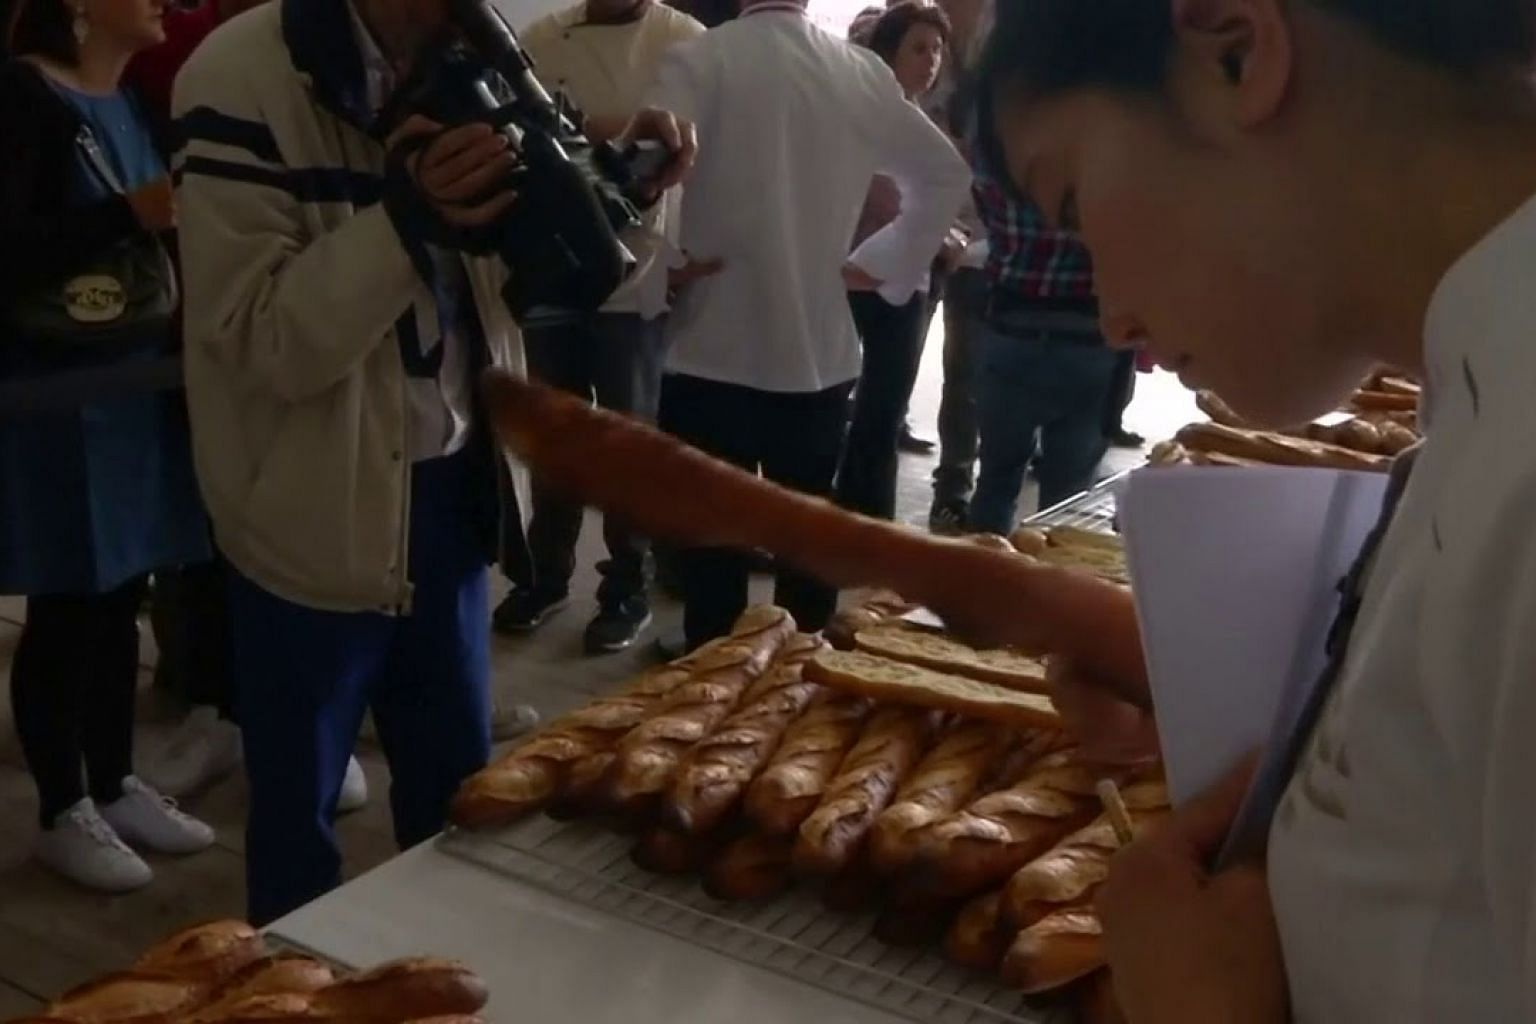 French bakers vie for prestigious title of Best Baguette